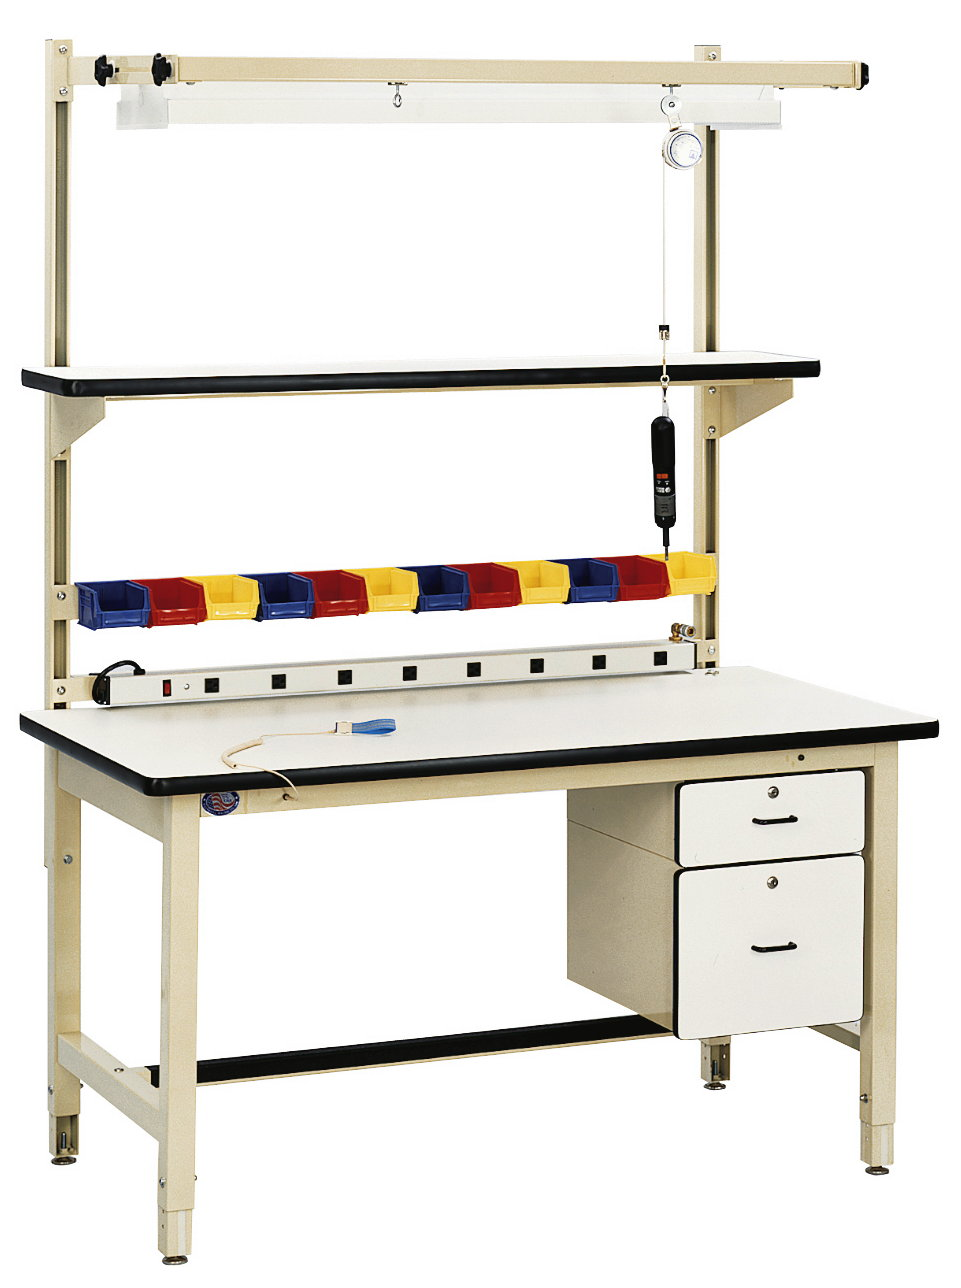 Model-HD-workbench / Industrial Workbench / ESD workbench